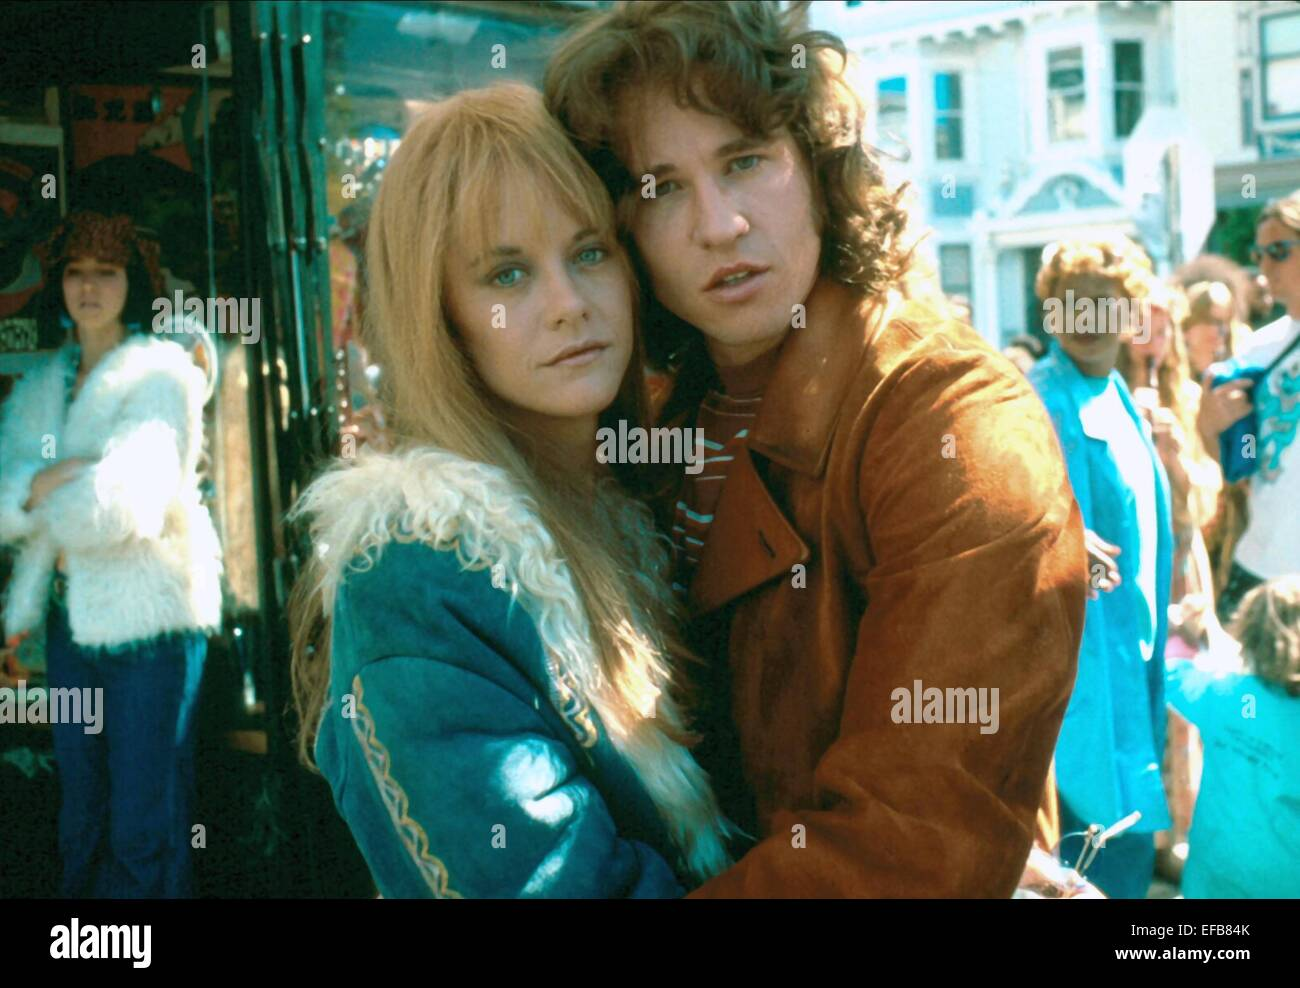 MEG RYAN u0026 VAL KILMER THE DOORS (1991)  sc 1 st  Alamy & MEG RYAN u0026 VAL KILMER THE DOORS (1991 Stock Photo: 78309187 - Alamy